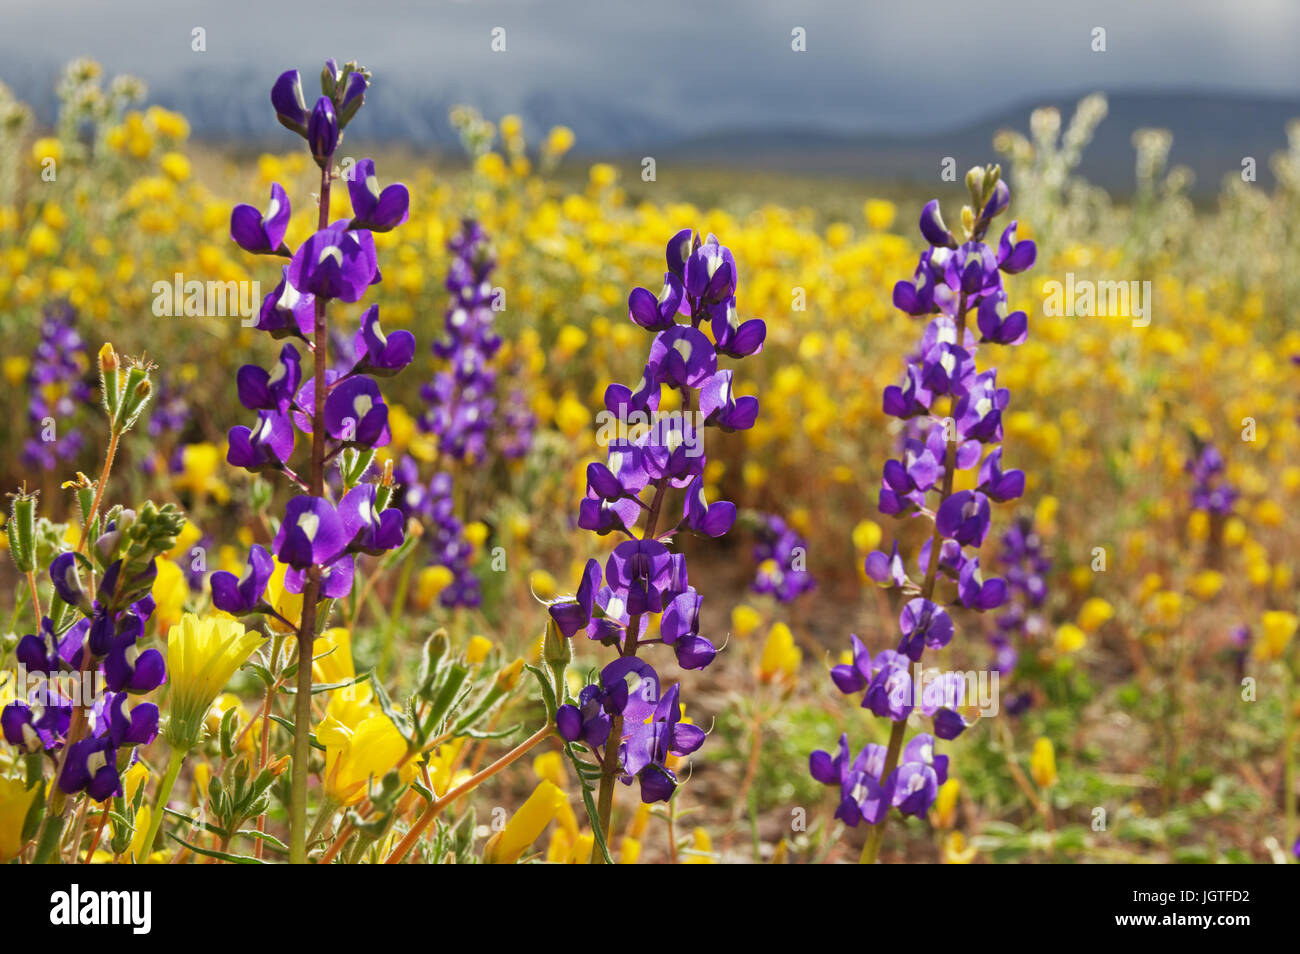 lupine wild flowers with other yellow flowers in the background during the California spring superbloom - Stock Image